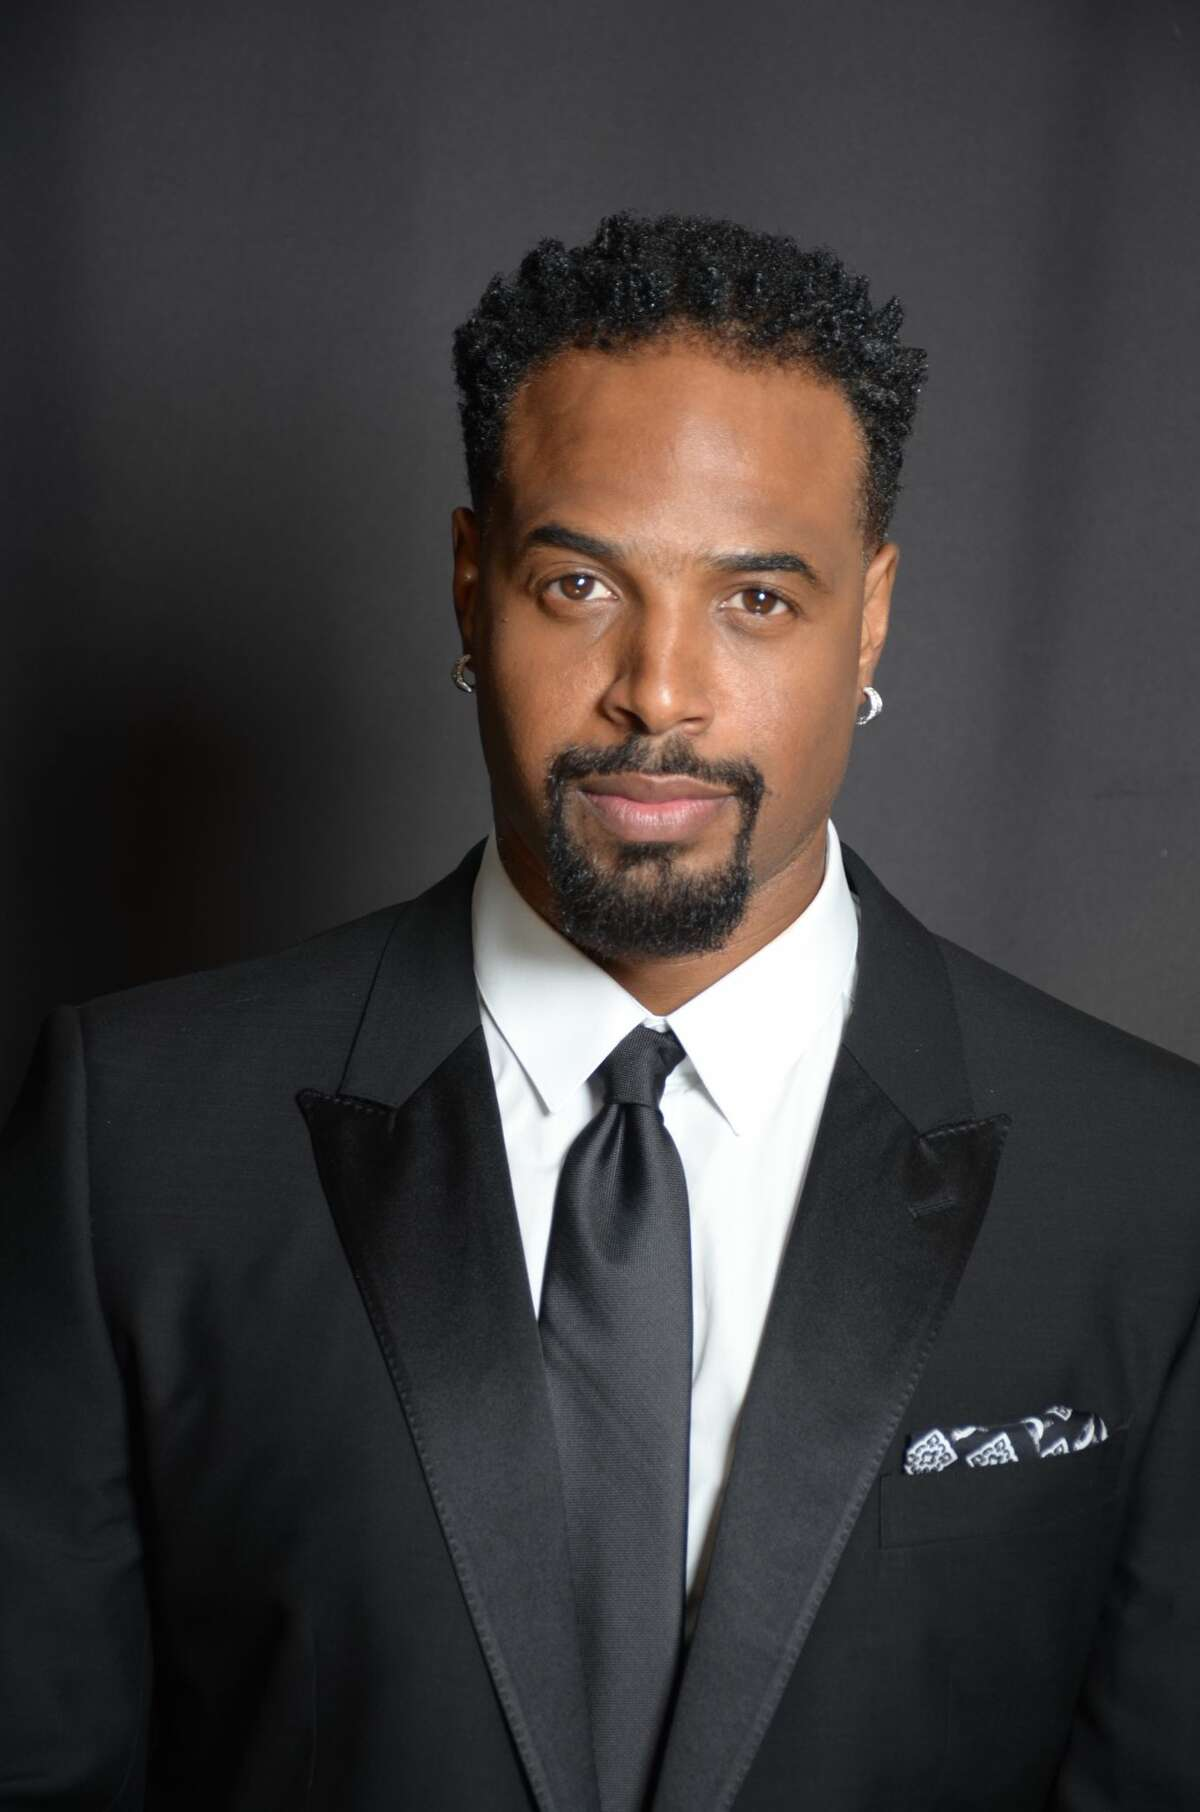 Shawn Wayans will be in San Antonio for a three-night stint at Laugh Out Loud Comedy Club, starting on Dec. 1.